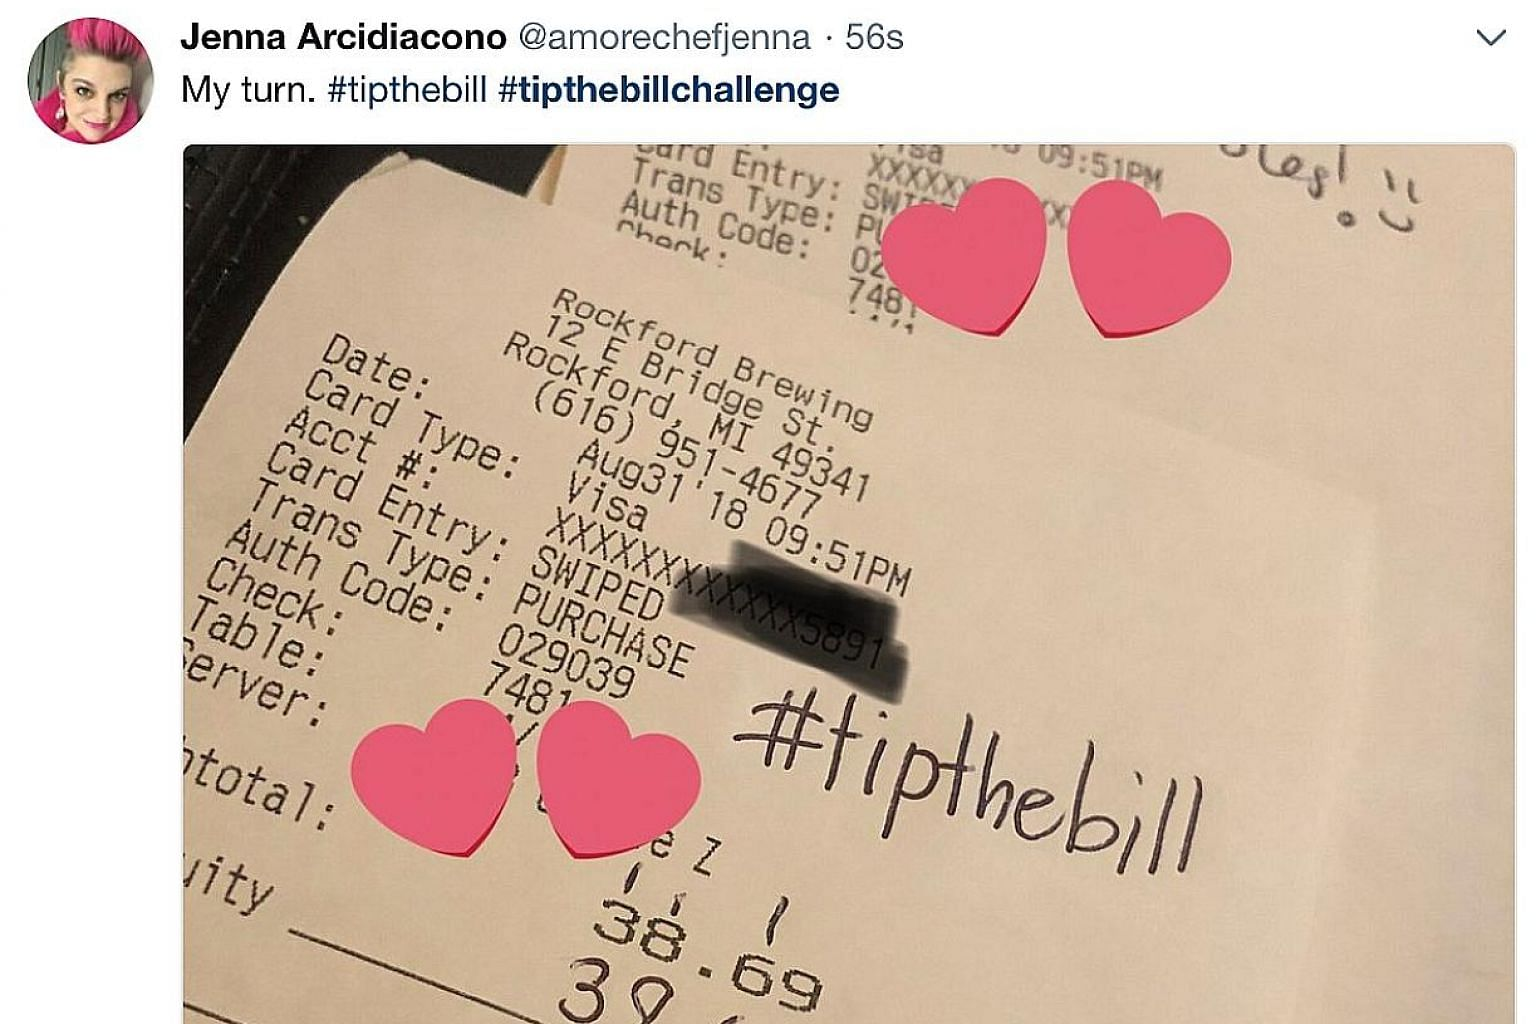 Huffington Post journalist Kimberly Yam's tweets on Asian representation in US culture have blown up over the past week. The #TipTheBillChallenge encourages diners to tip as much as the actual bill, but some feel it does not address the real problem